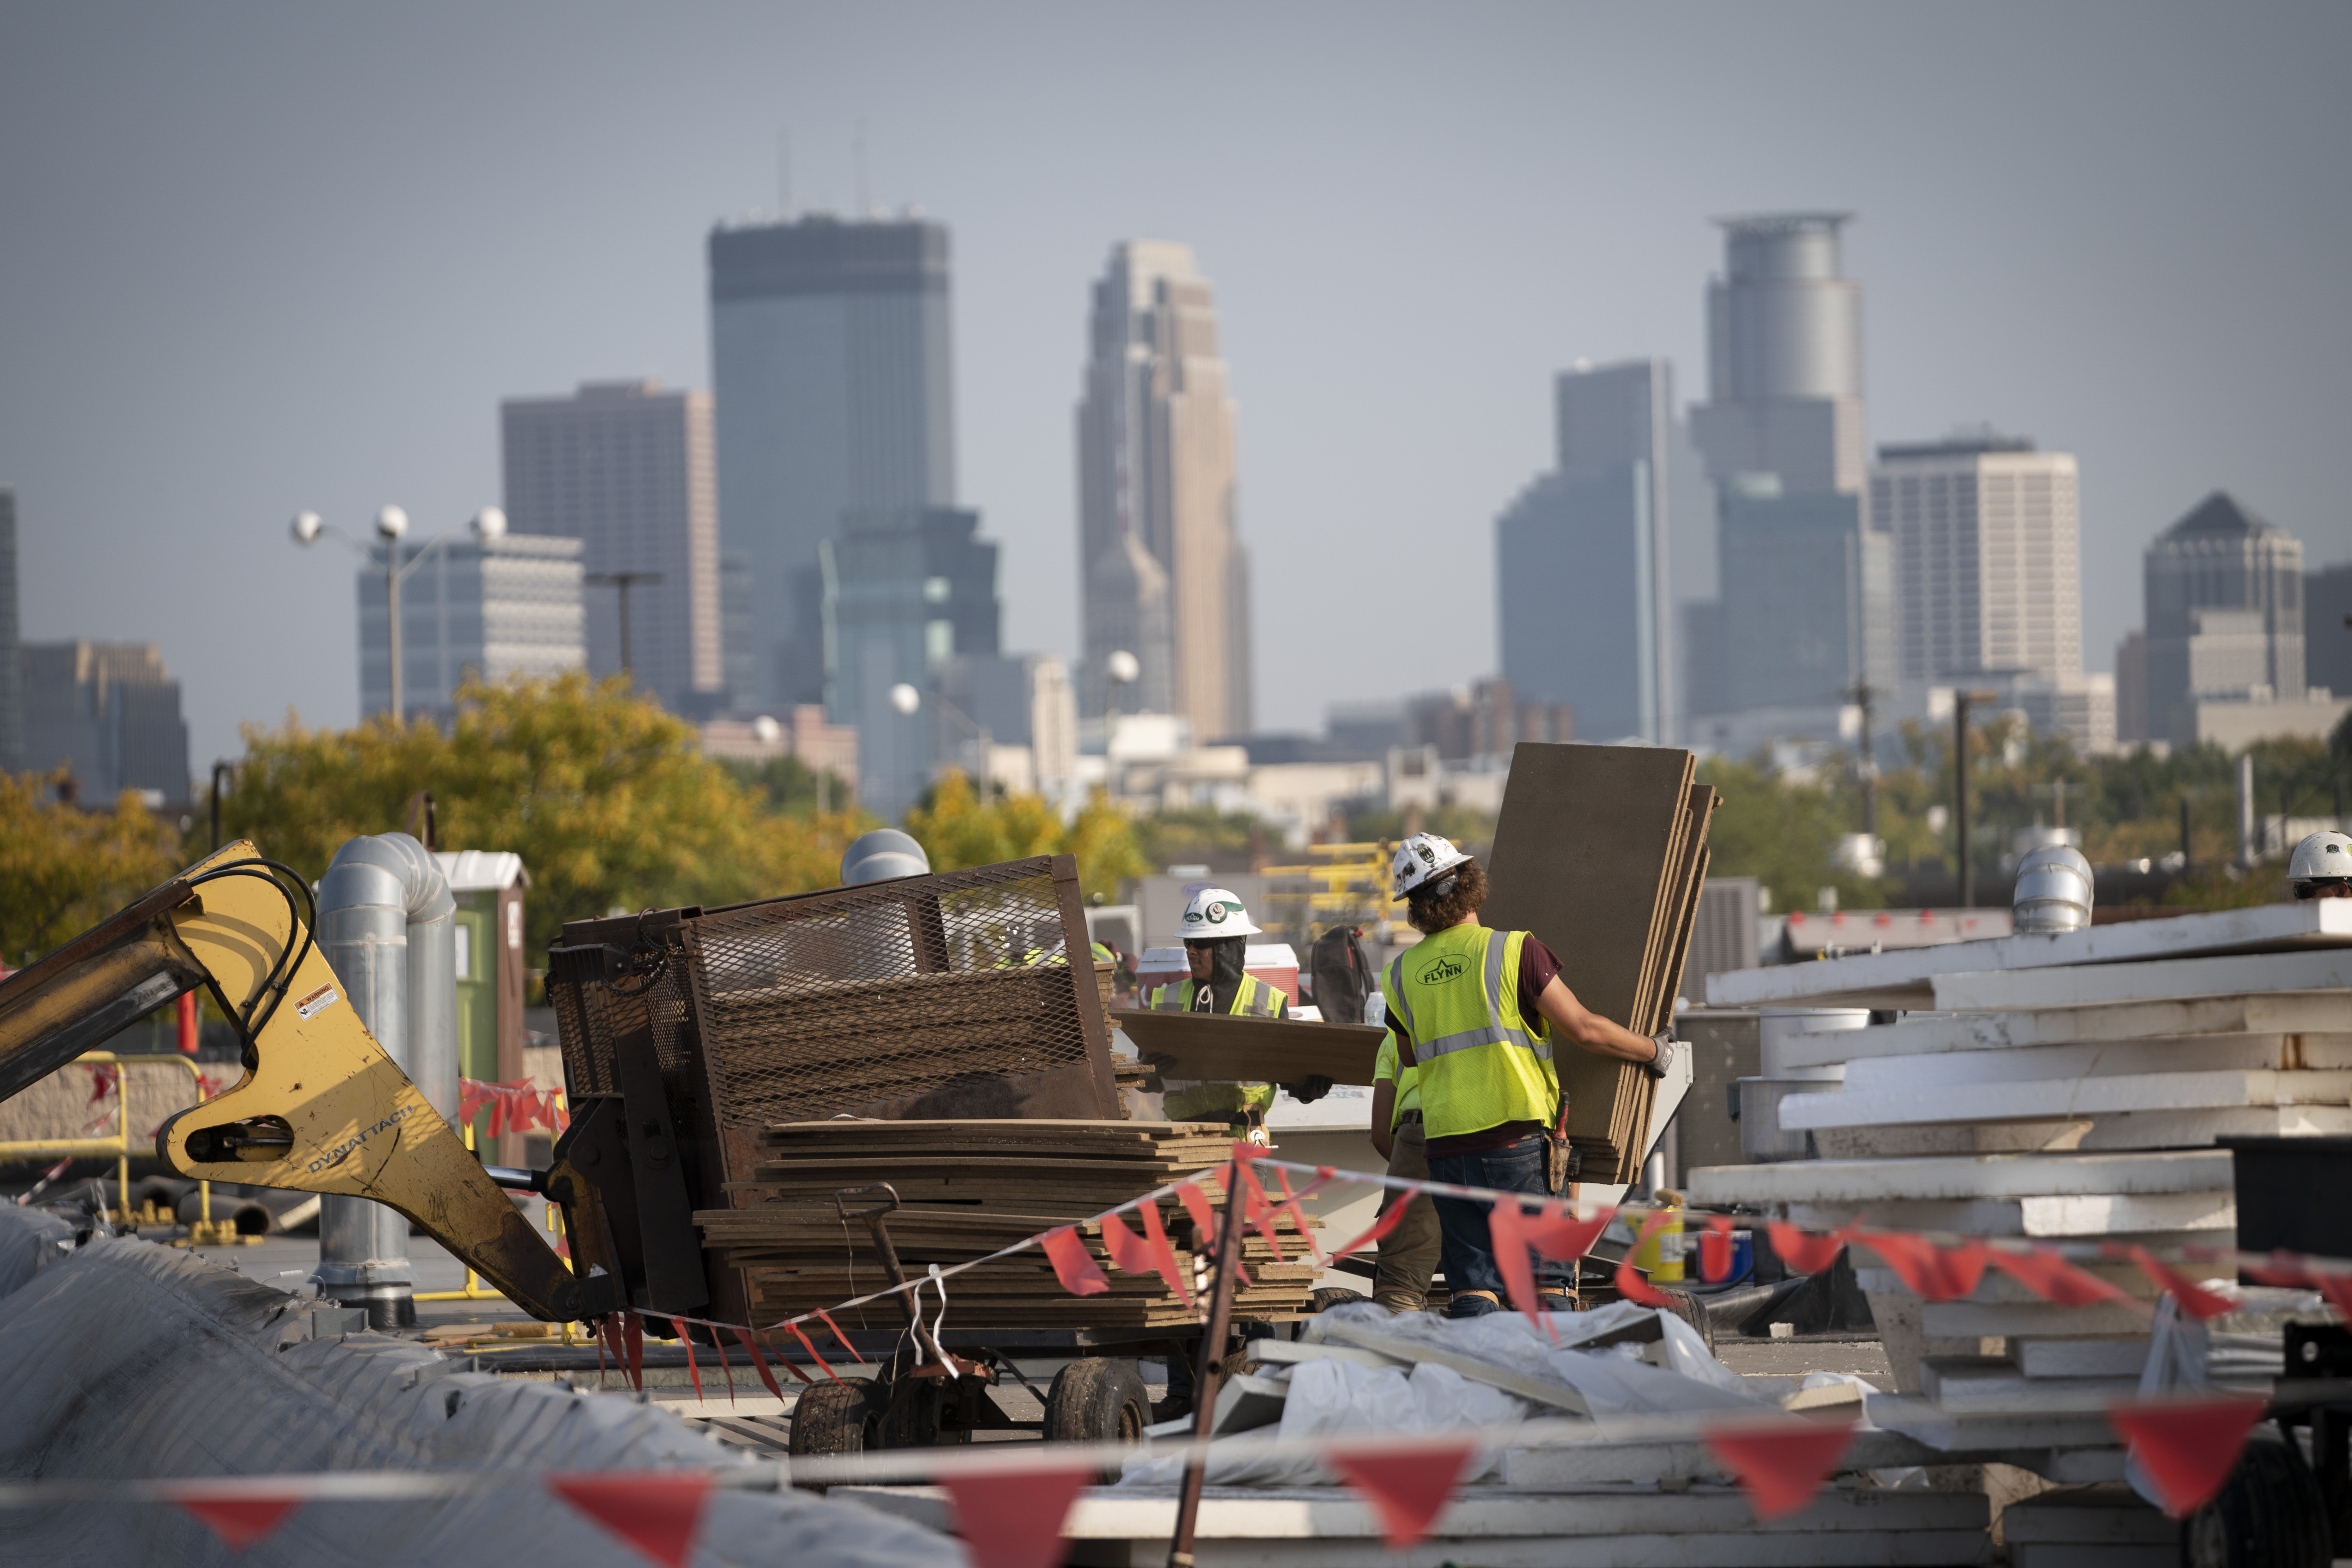 Construction workers worked on the roof of Highland Plaza that has a direct view of the Minneapolis skyline.